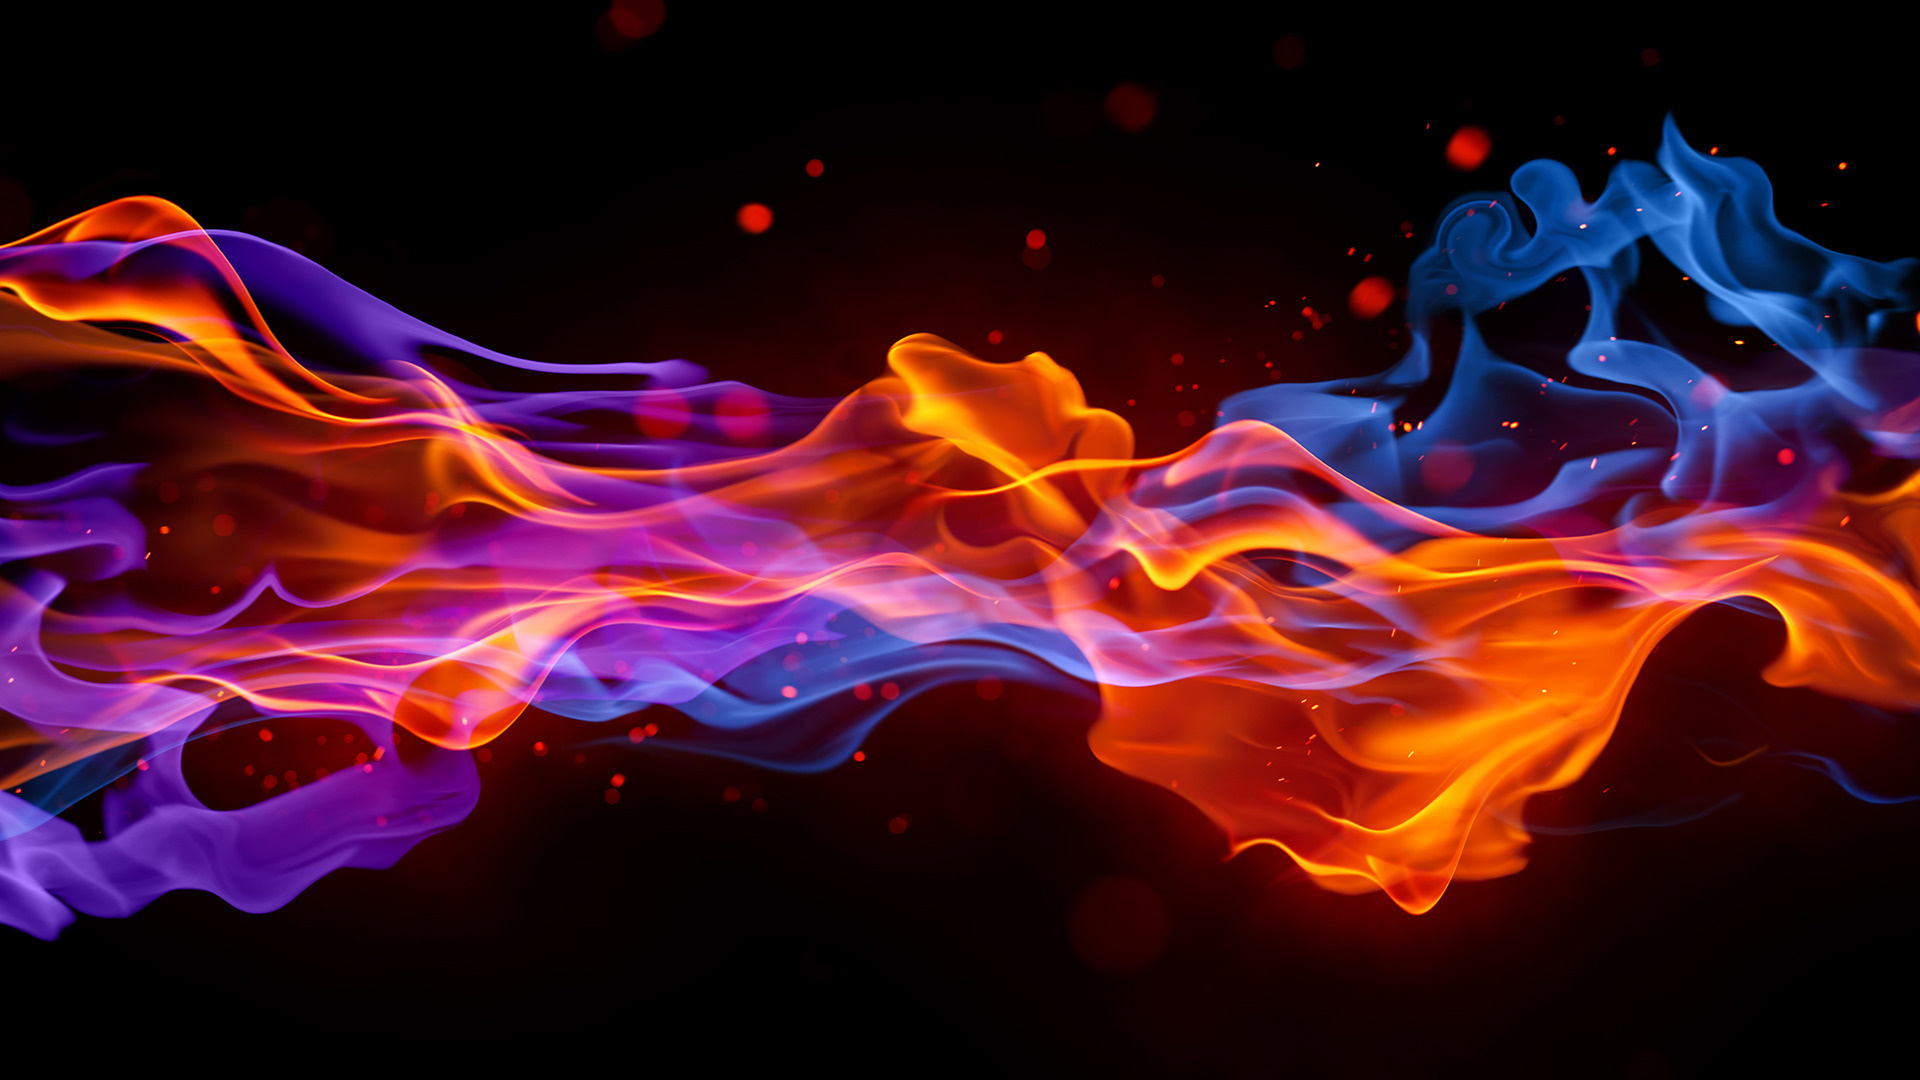 rainbow fire background - photo #5